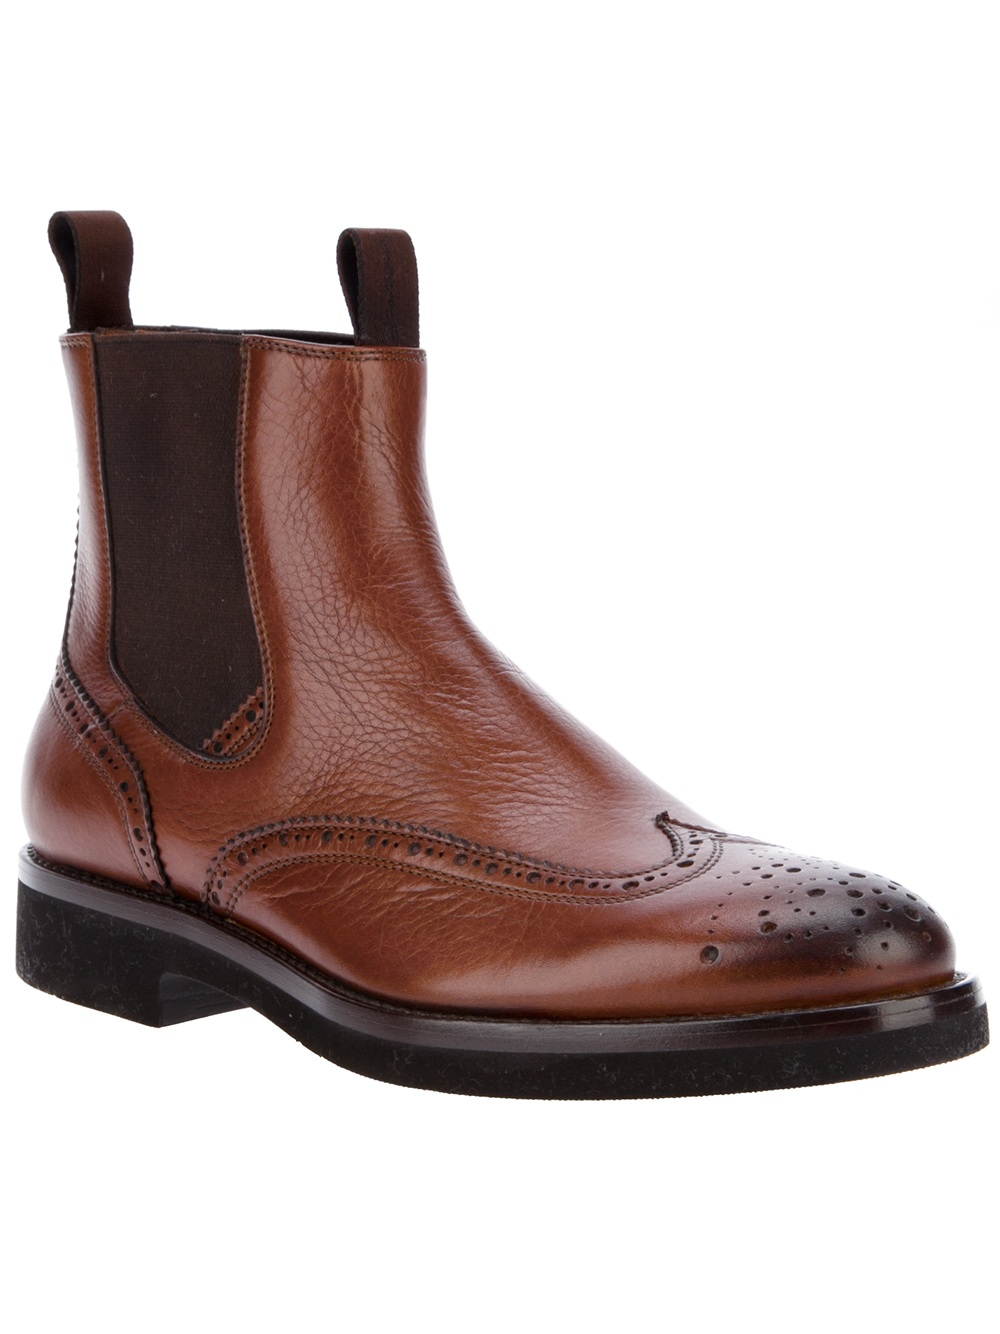 Shop new styles on sale at allxpreswts.ml Find men's shoes, oxfords, leather bags and coats on sale. Cole Haan.